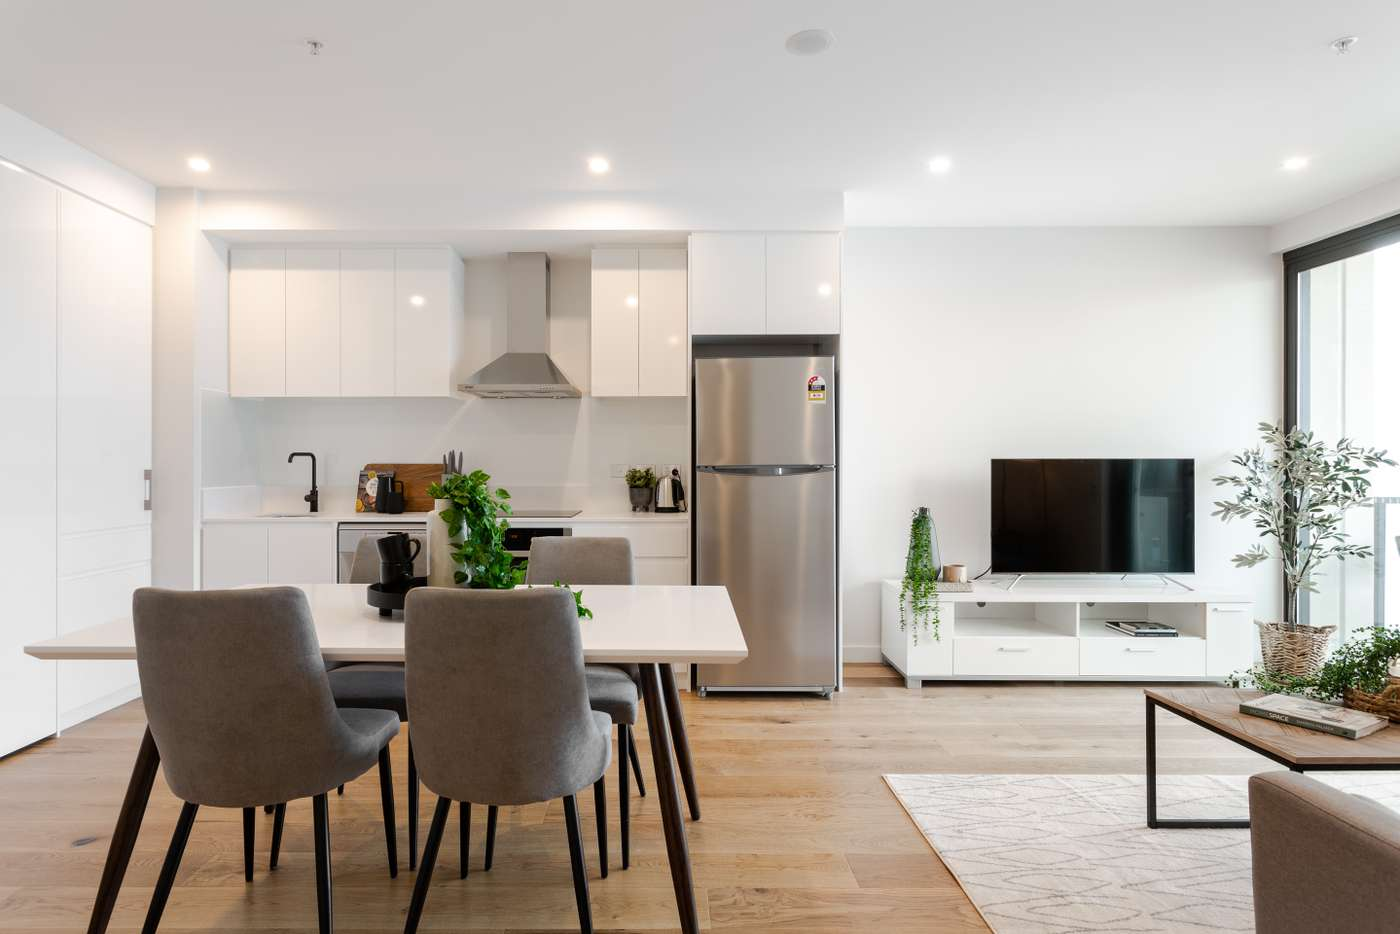 Main view of Homely apartment listing, 1202/297 Pirie Street, Adelaide SA 5000